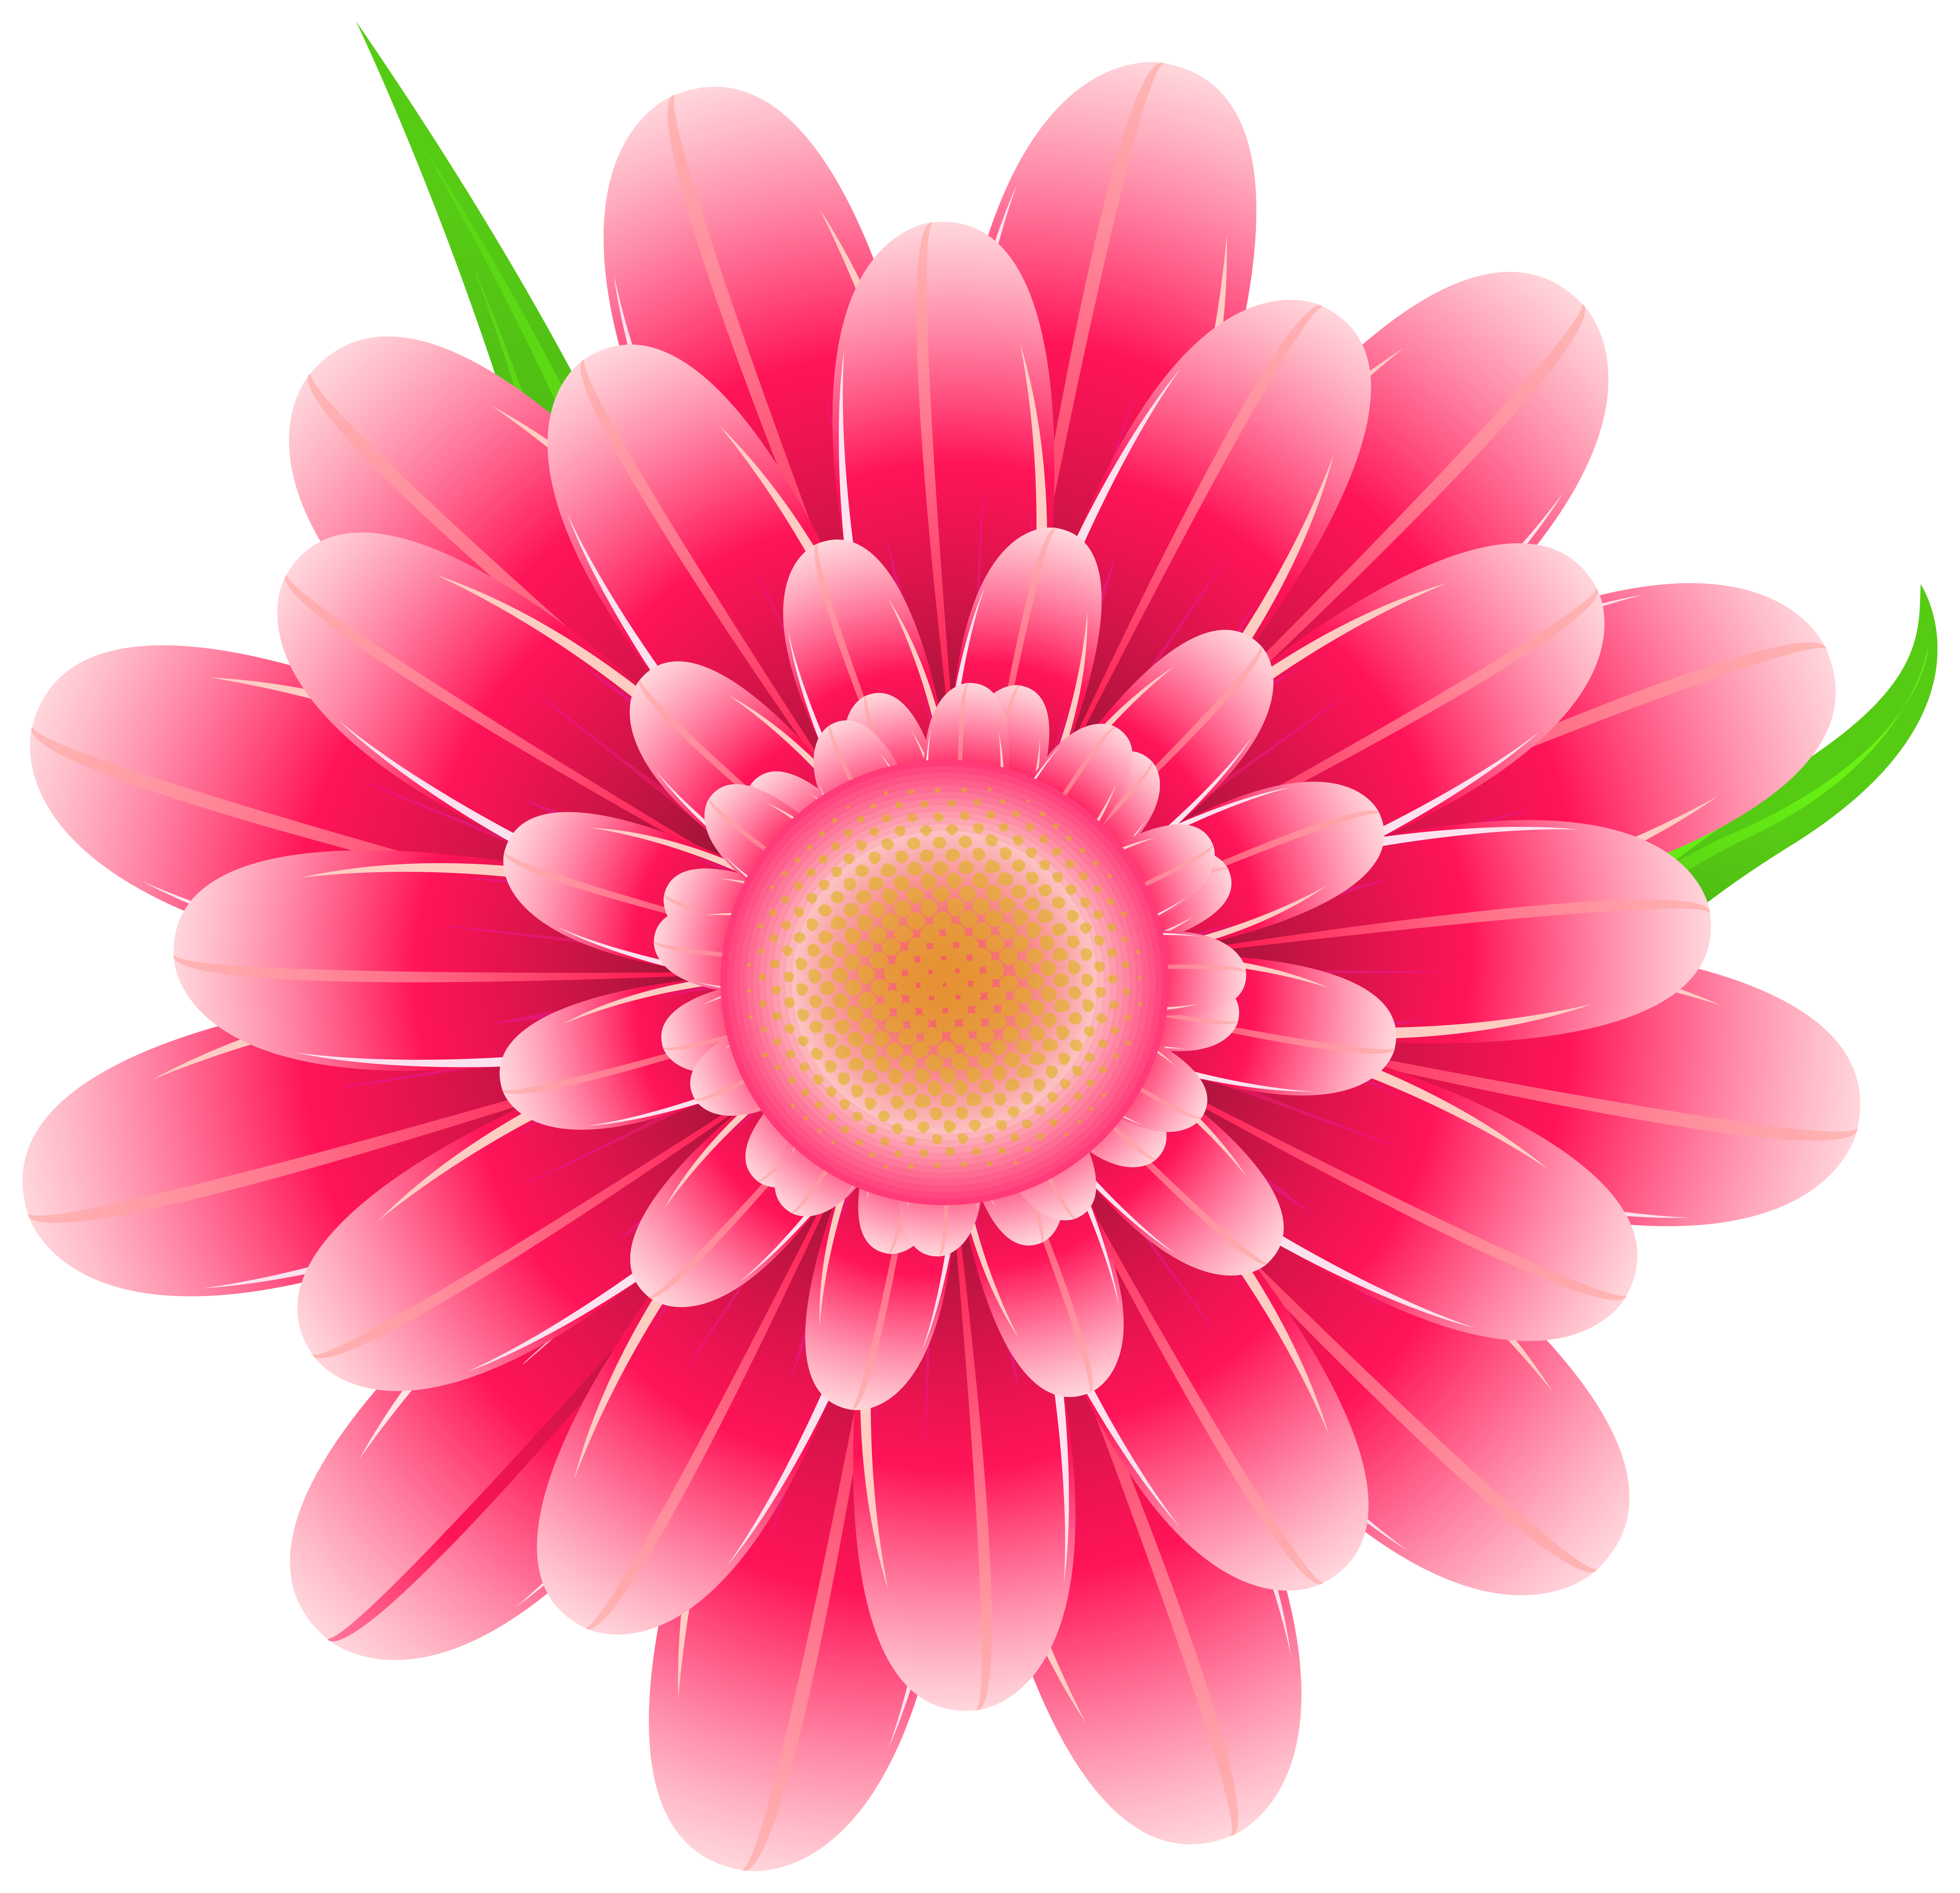 Png flower clipart vector transparent Transparent Pink Flower Clipart PNG Image vector transparent